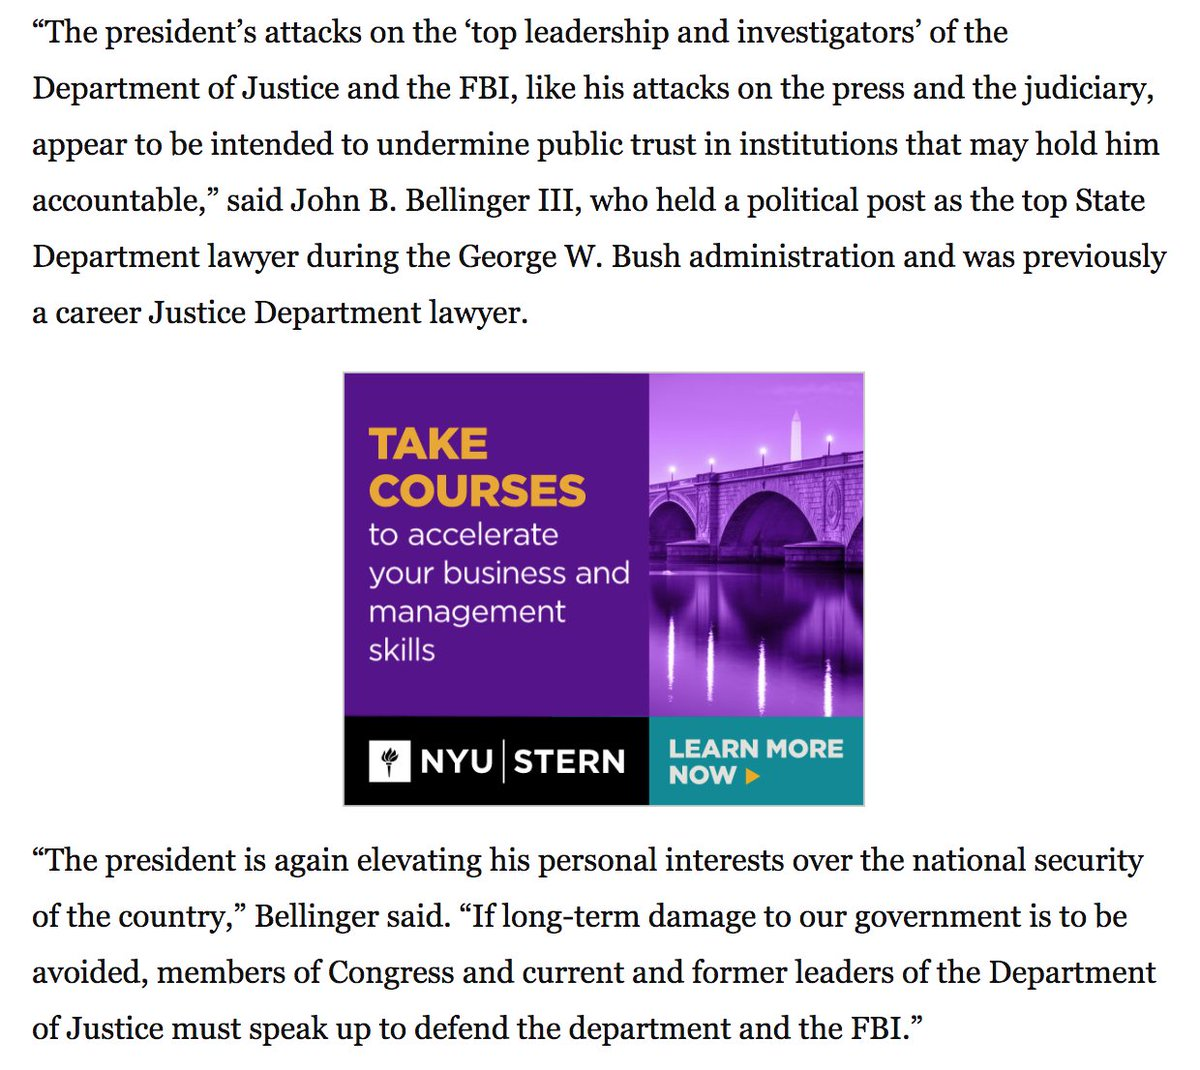 benjamin wittes on twitter two years ago john bellinger was to   threat to u s national security a short essay that profoundly influenced my thinking on the subject unlike a lot of republicans he has continued